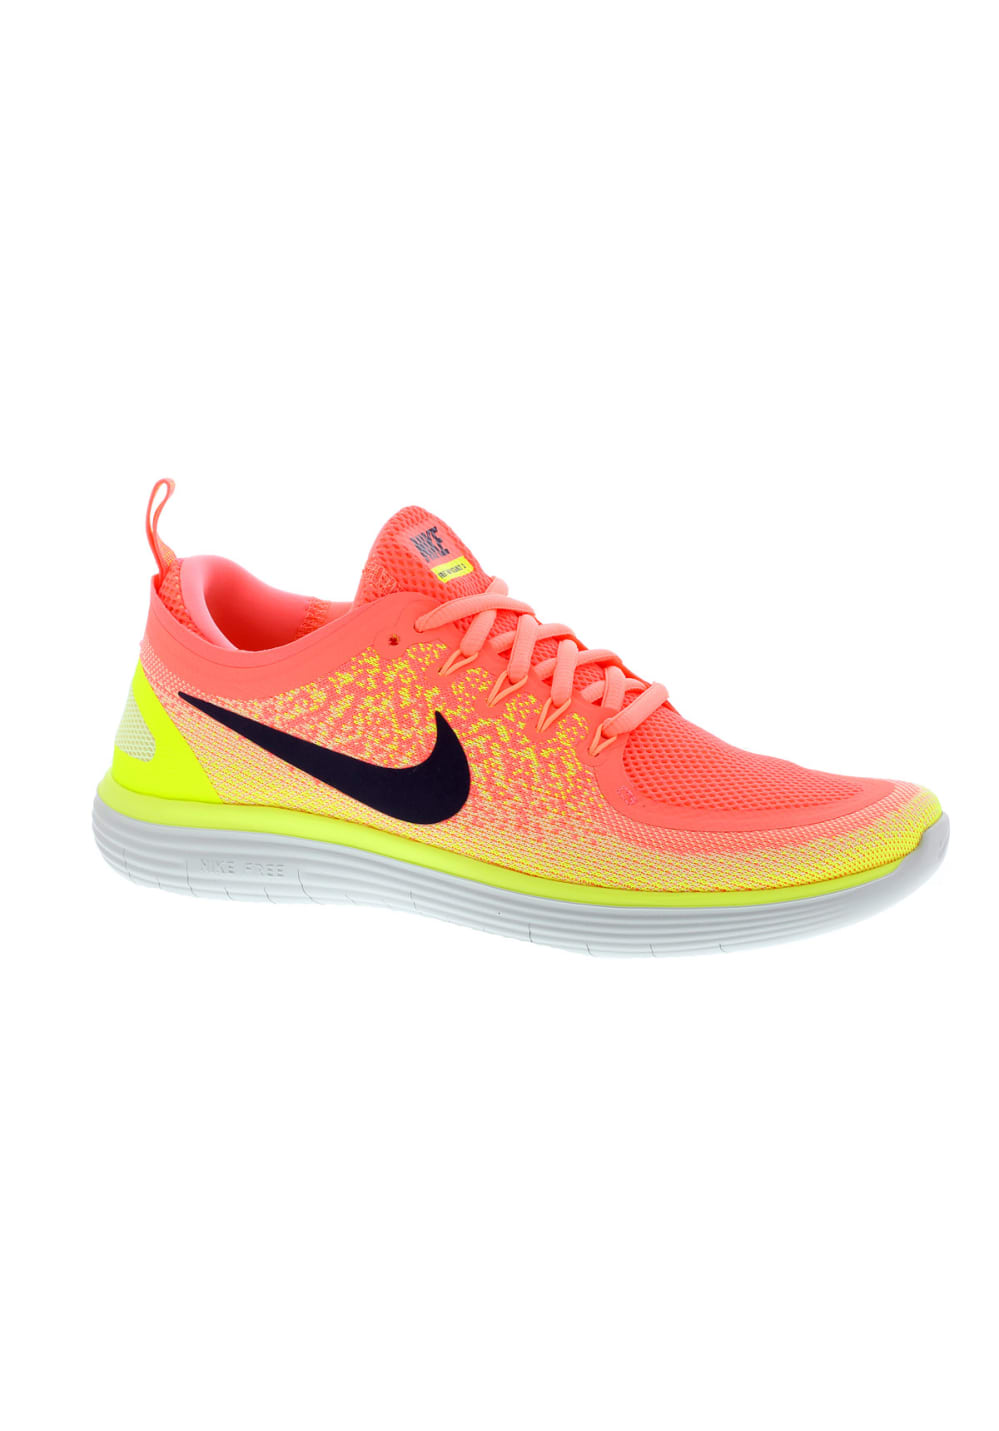 brand new 9ceff 89435 Nike Free RN Distance 2 - Running shoes for Women - Orange